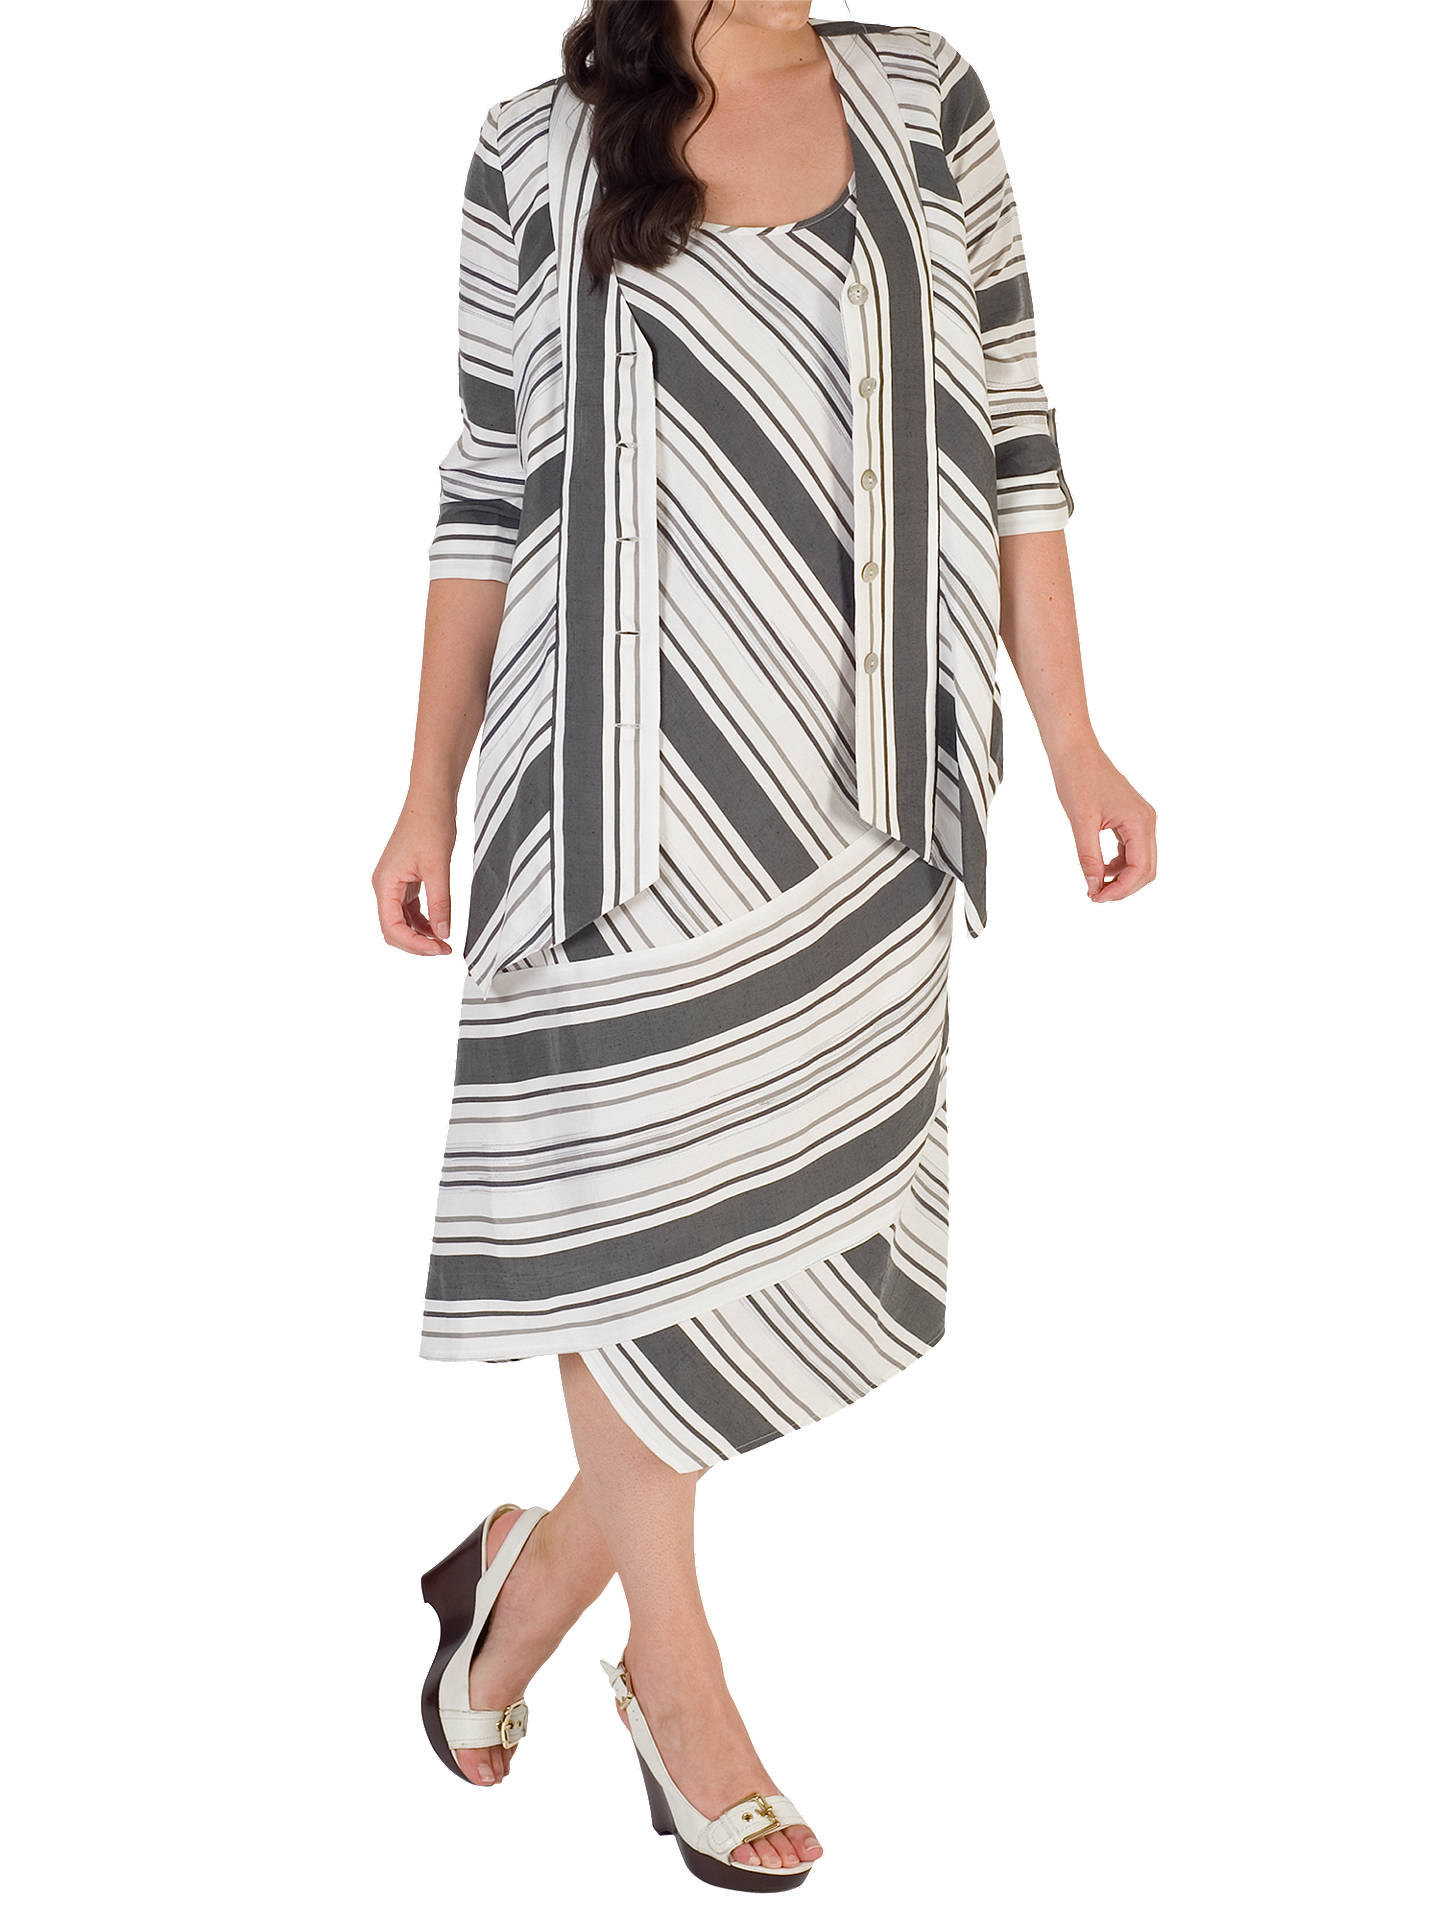 BuyChesca Diagonal Striped Jacket, White/Black, 12-14 Online at johnlewis.com